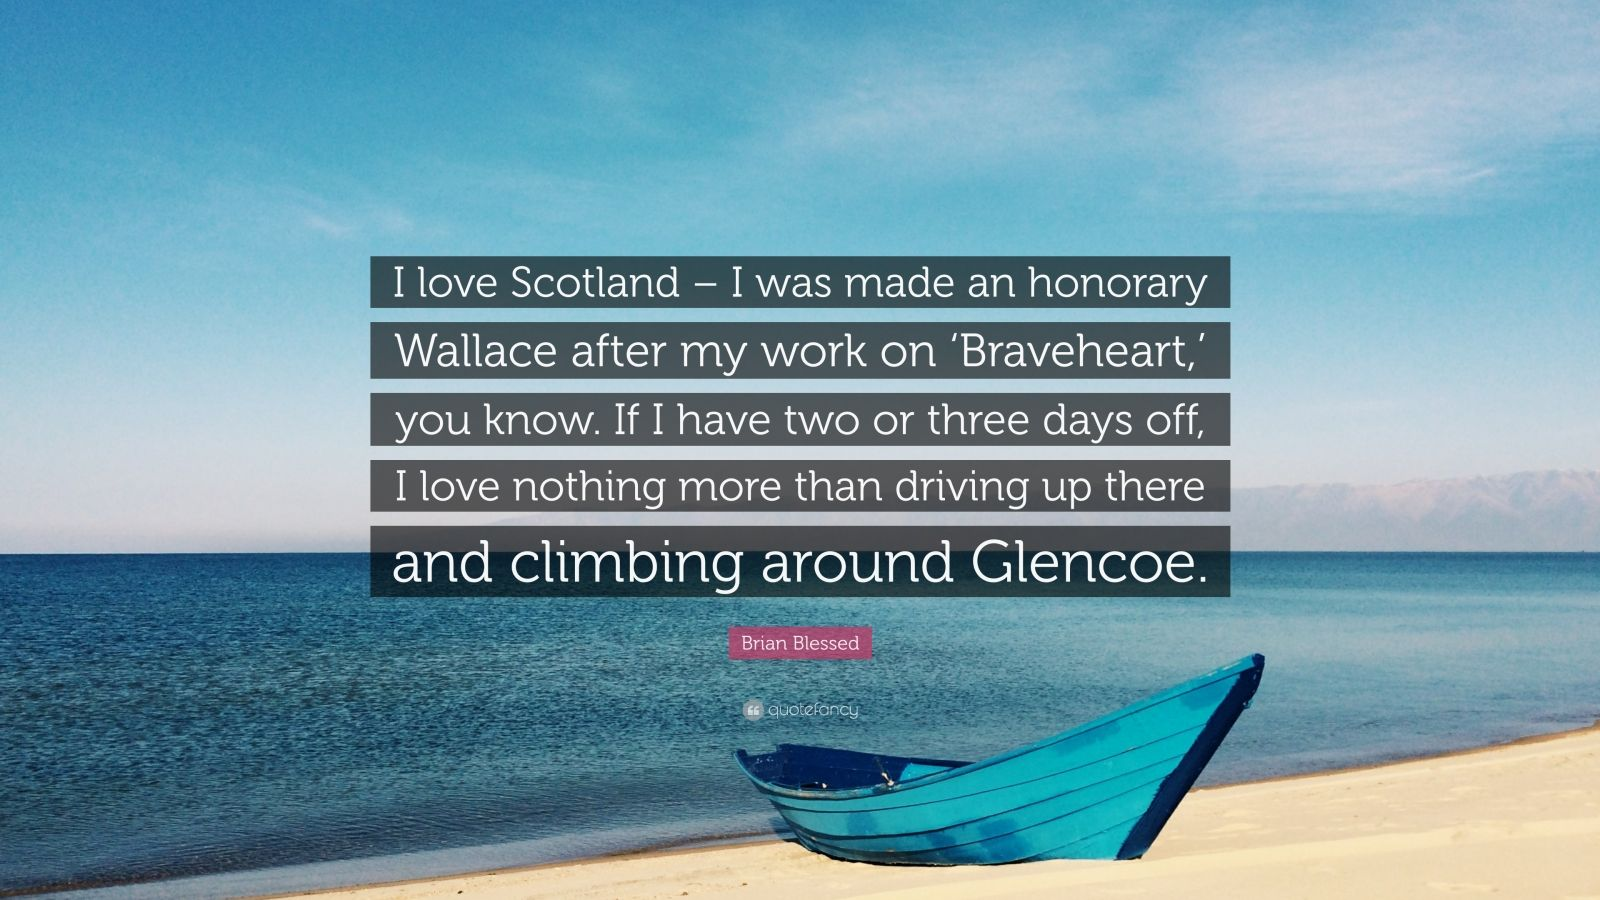 """Brian Blessed Quote: """"I love Scotland – I was made an honorary Wallace after my work on 'Braveheart,' you know. If I have two or three days off, I love nothing more than driving up there and climbing around Glencoe."""""""